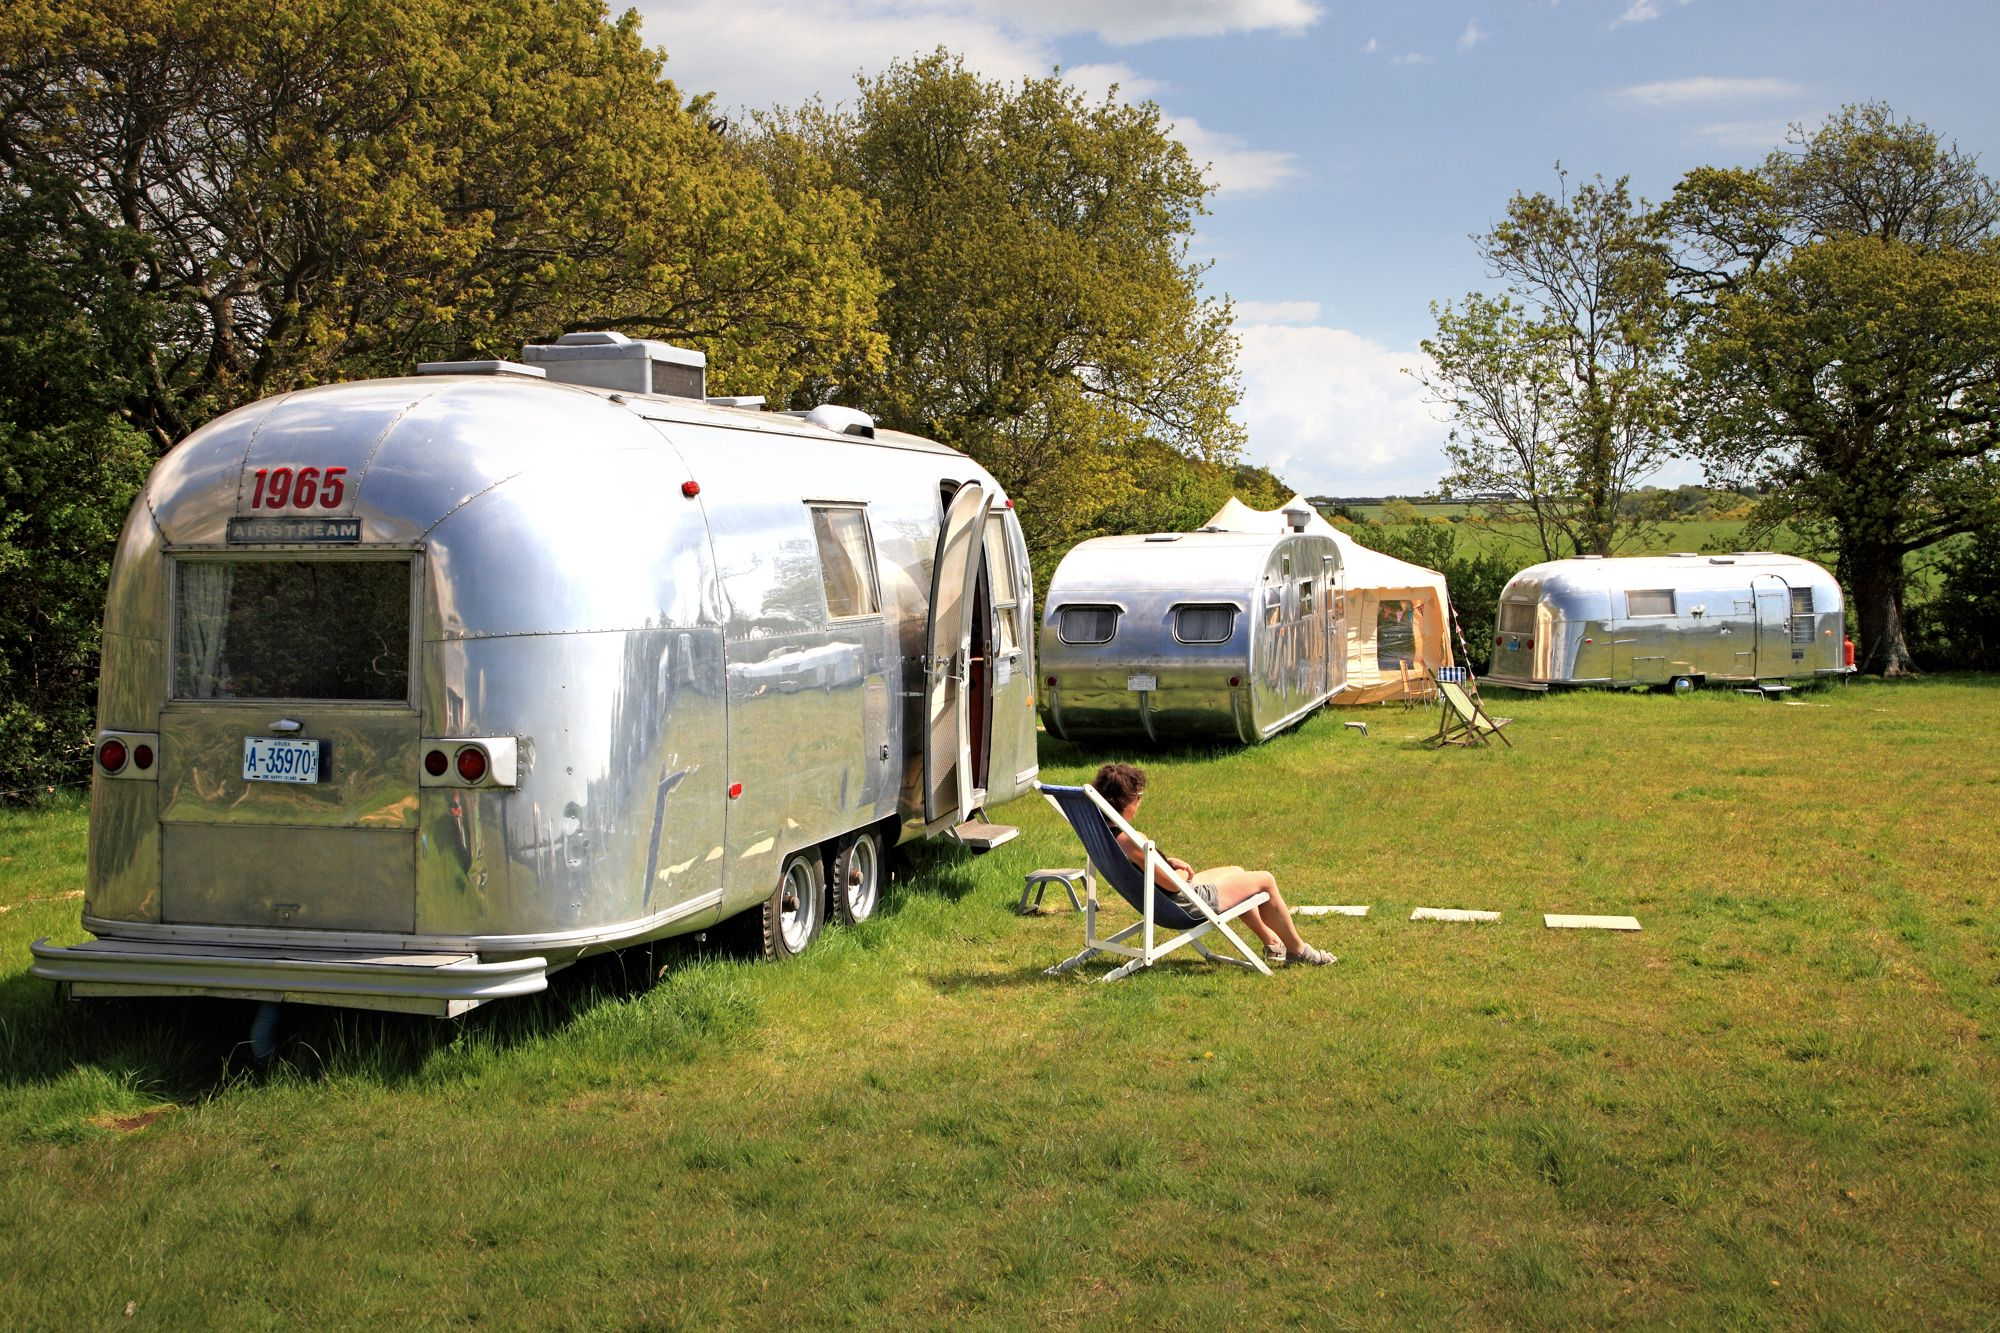 If you fancy some real escape, then take a trip to another time and get retro, old-school cool in some classic Airstream trailers at Vintage Vacations on the Isle of Wight.